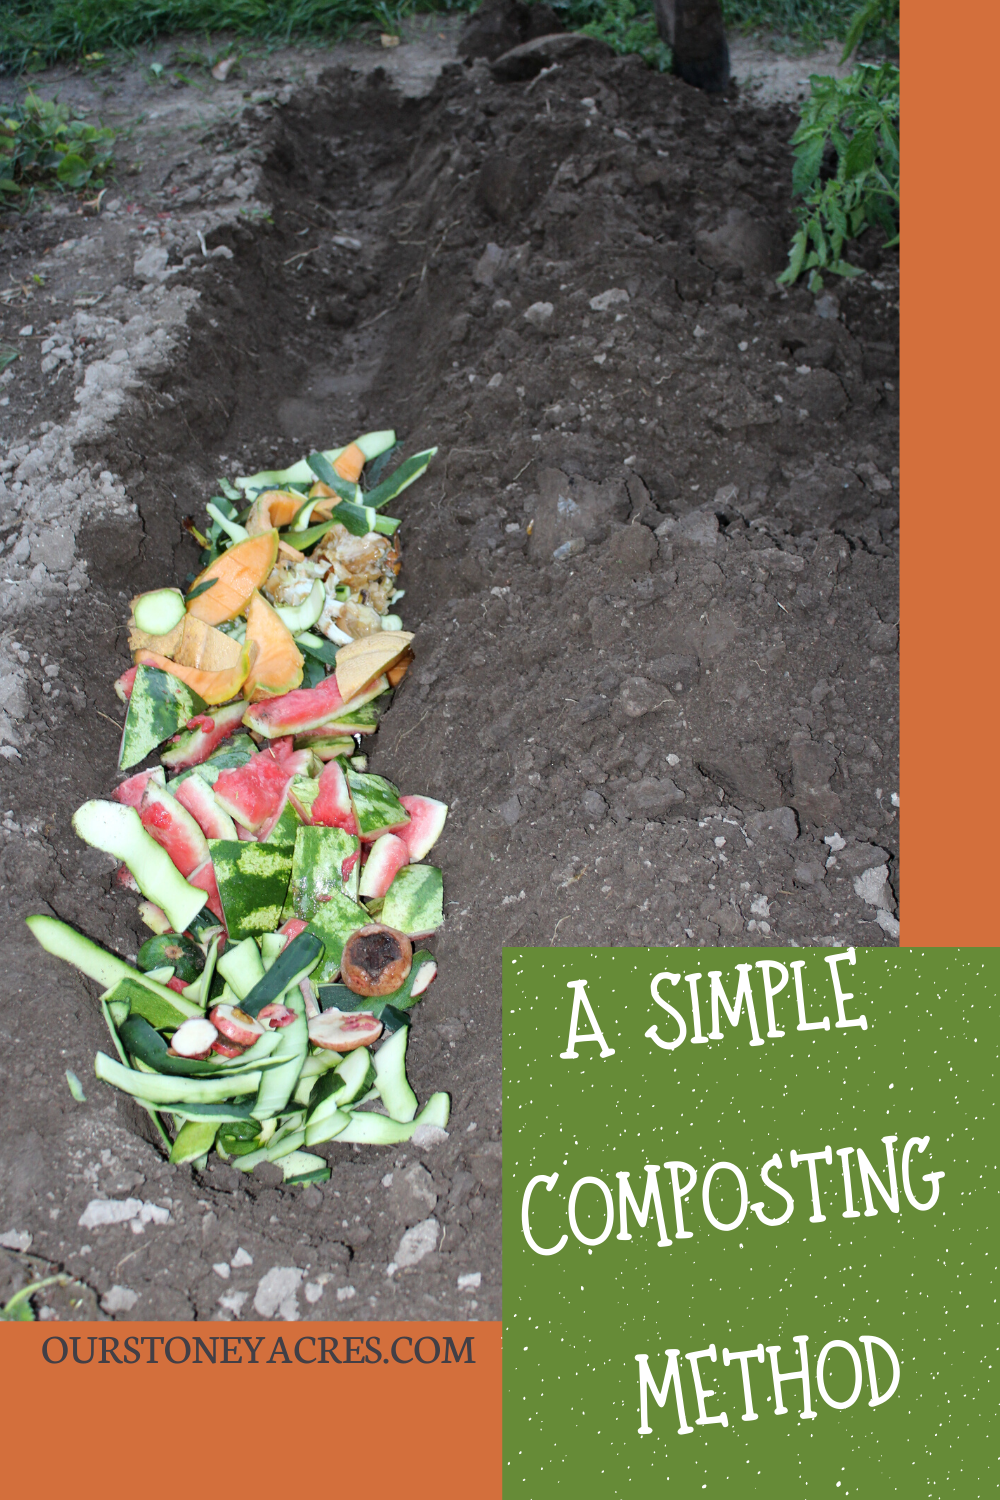 Composting Method